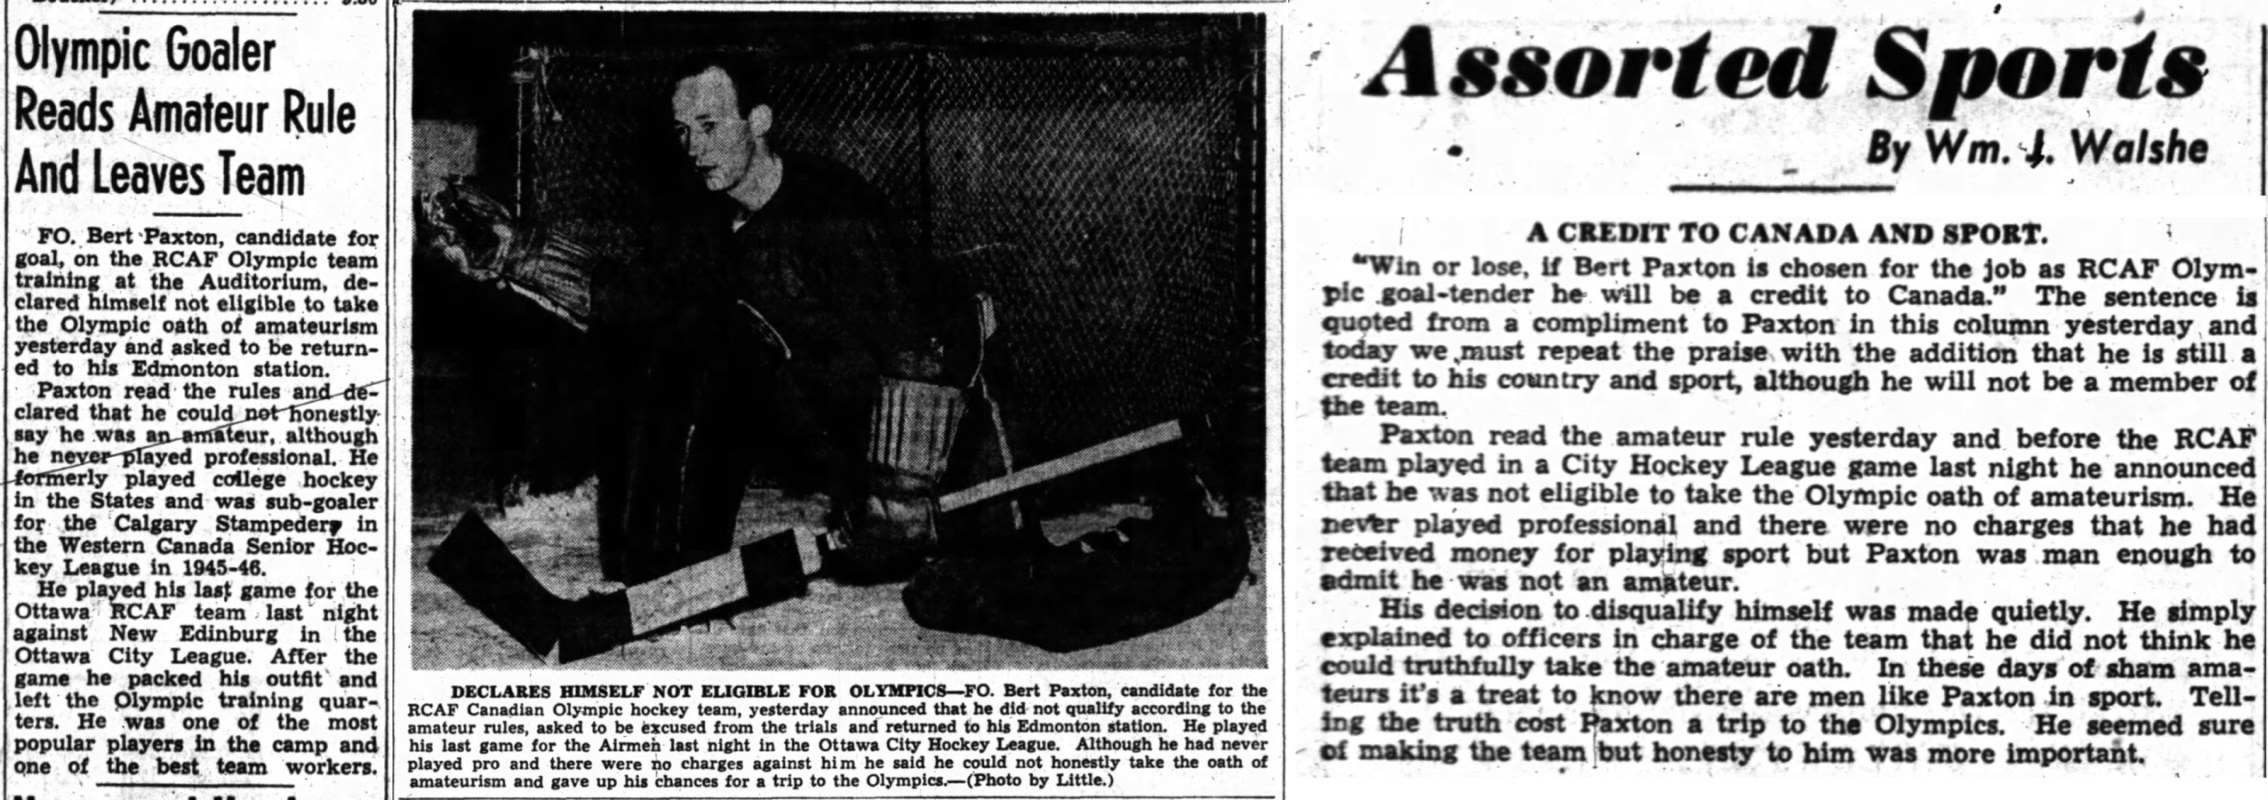 PHOTO: Ottawa Journal Oct 29 1947 Newspaper Article excerpts  Goalie Bert Paxton Leaves Flyers due to Olympic Oath